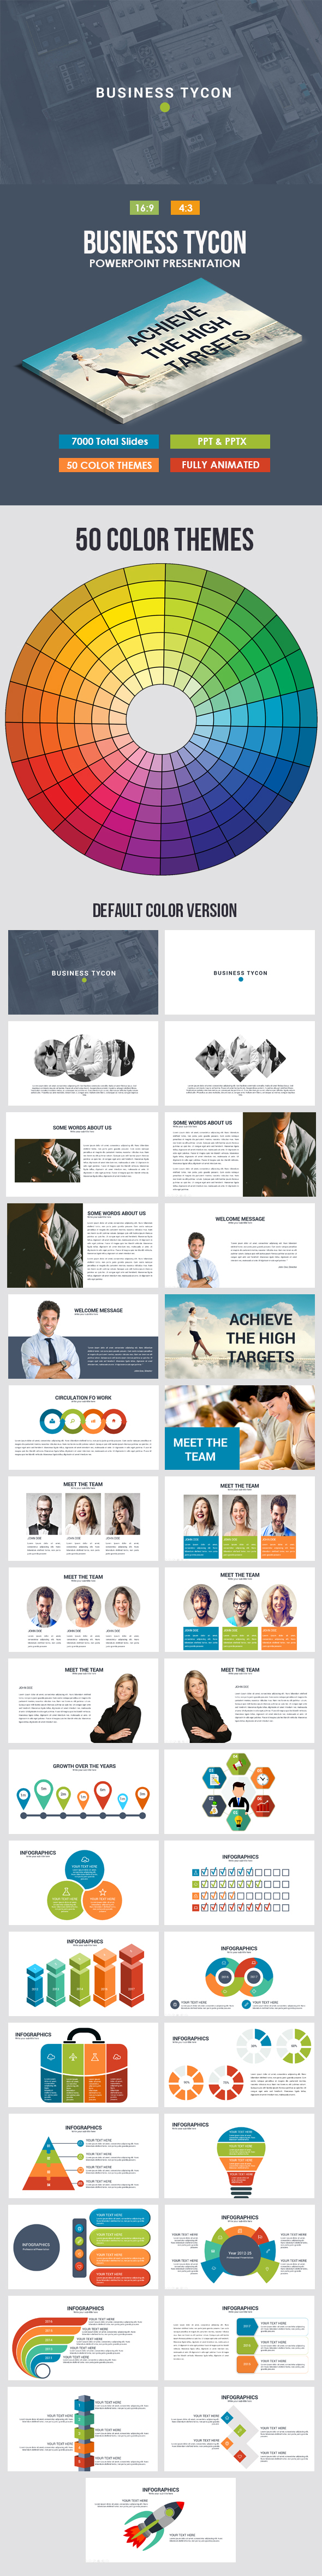 Business Tycon Powerpoint Template